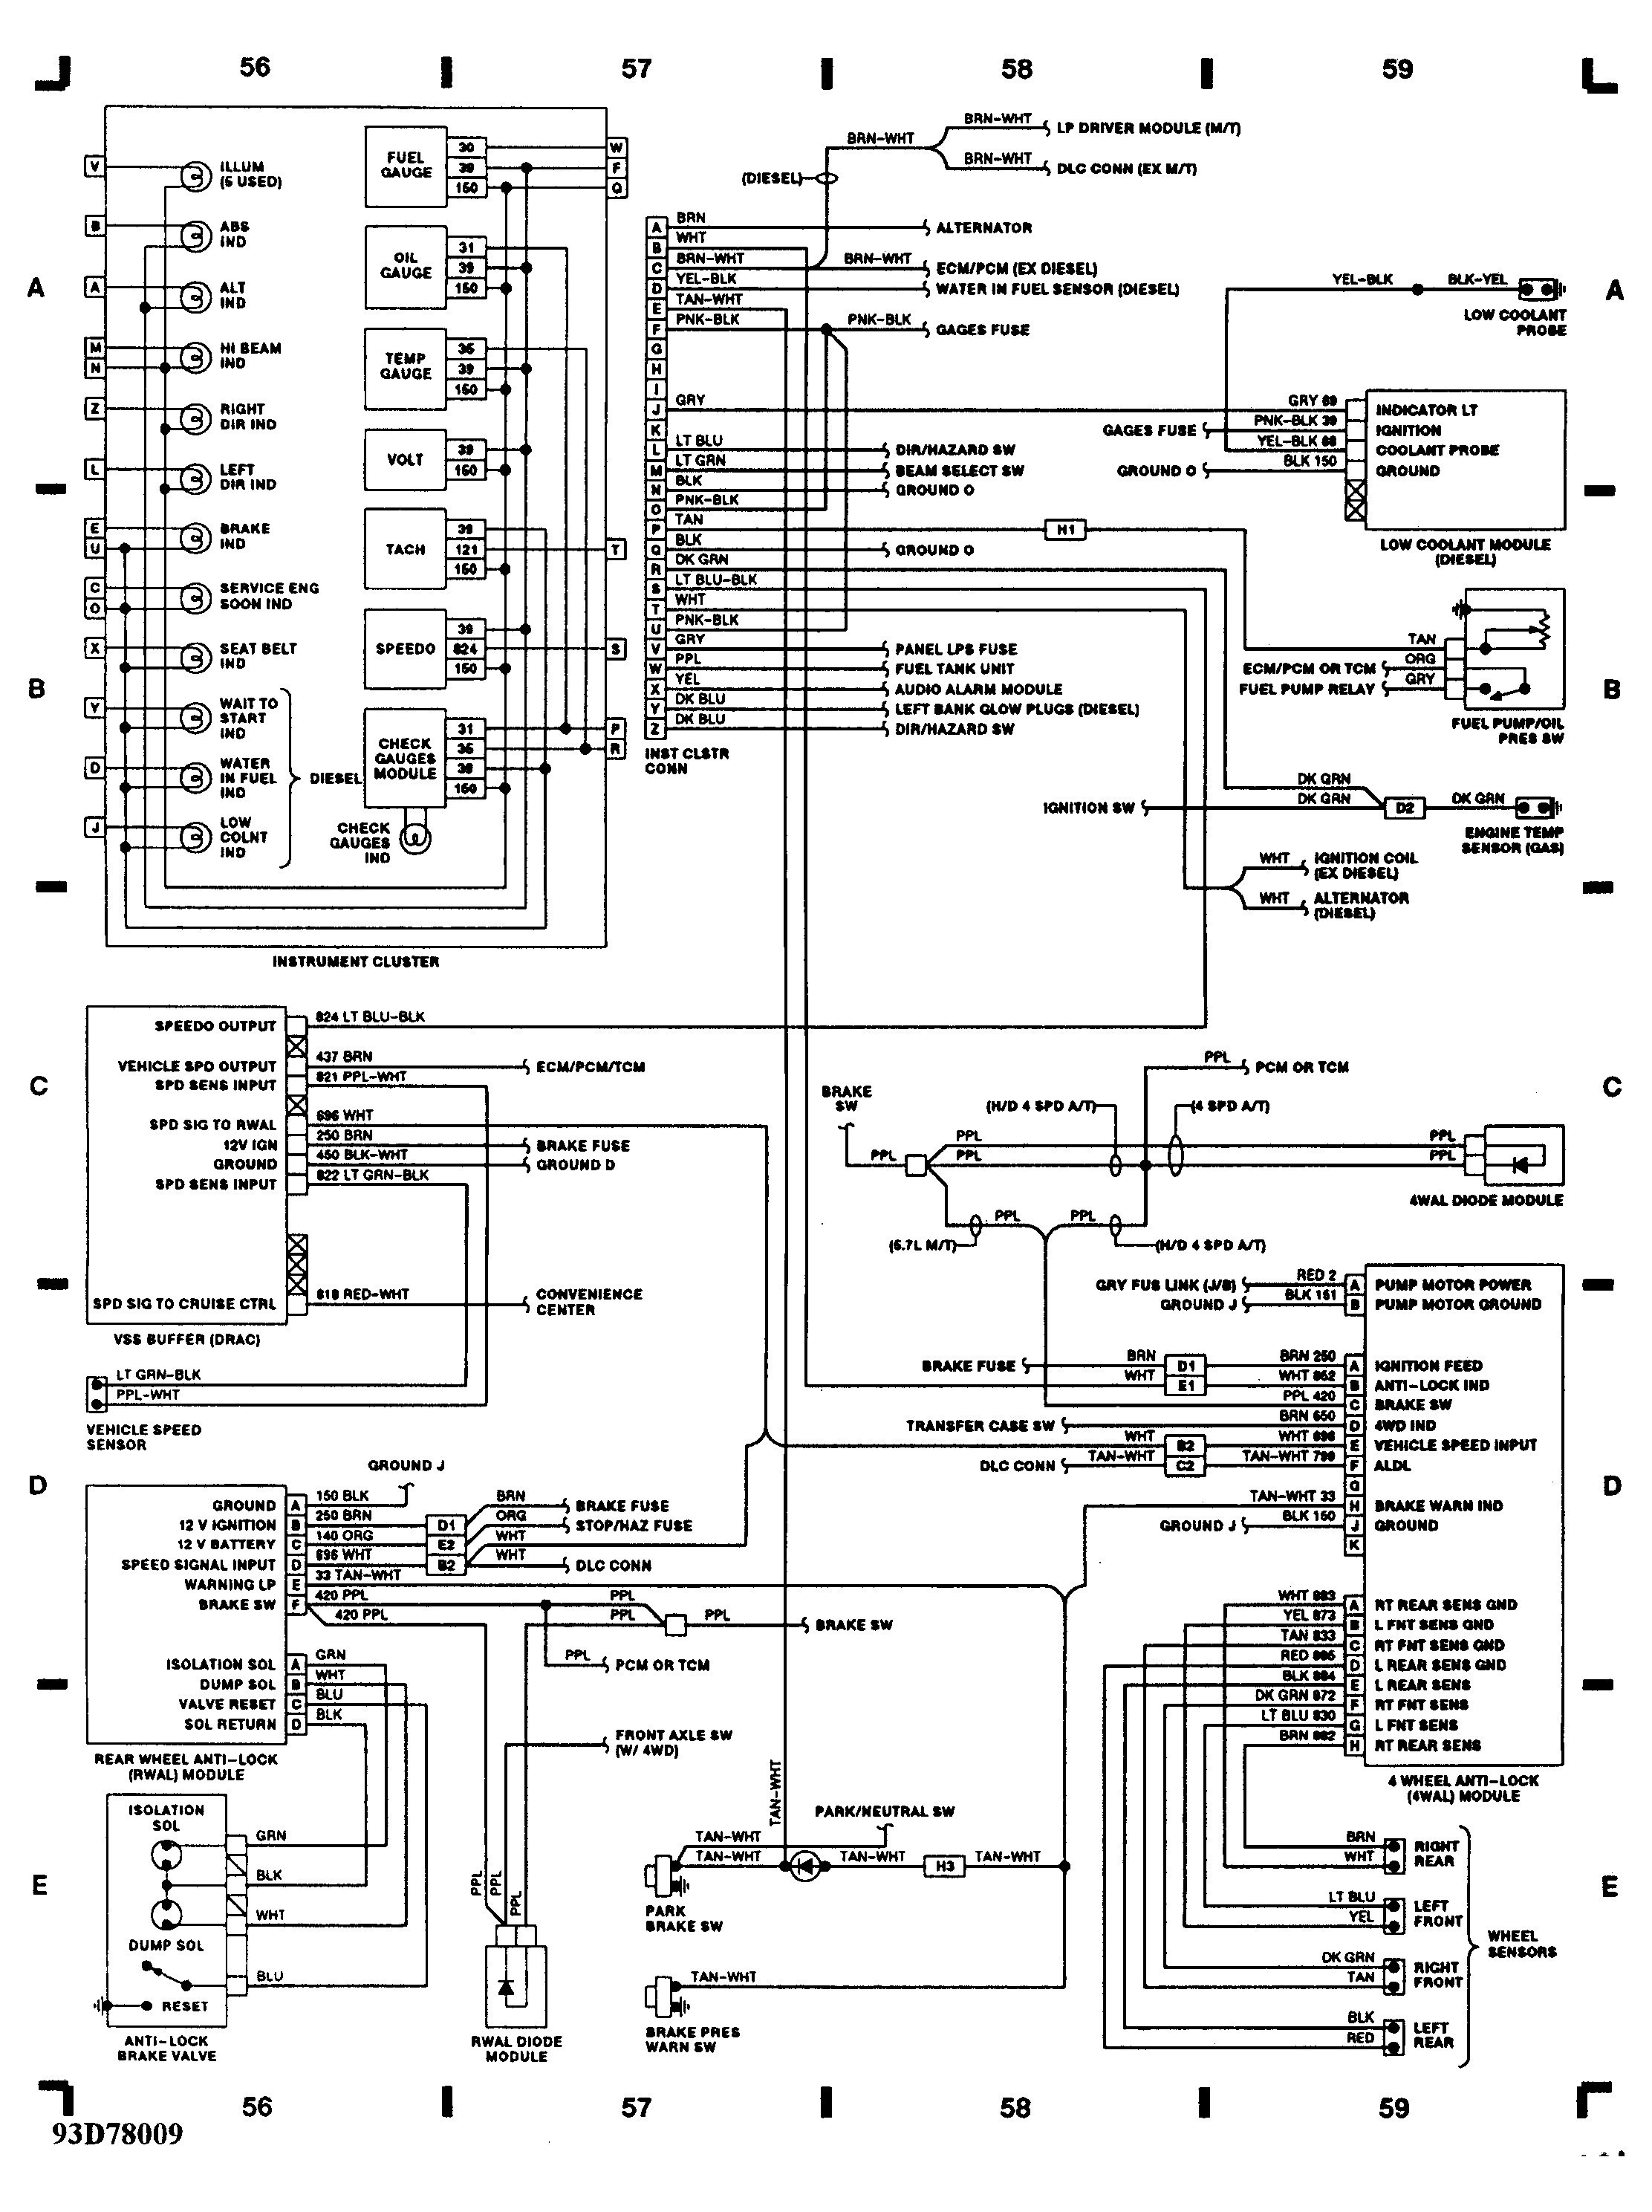 2005 Gmc Sierra Radio Wiring Diagram - 2006 Chevy Impala Fuse Diagram -  gsxr750.periihh.jeanjaures37.frWiring Diagram Resource